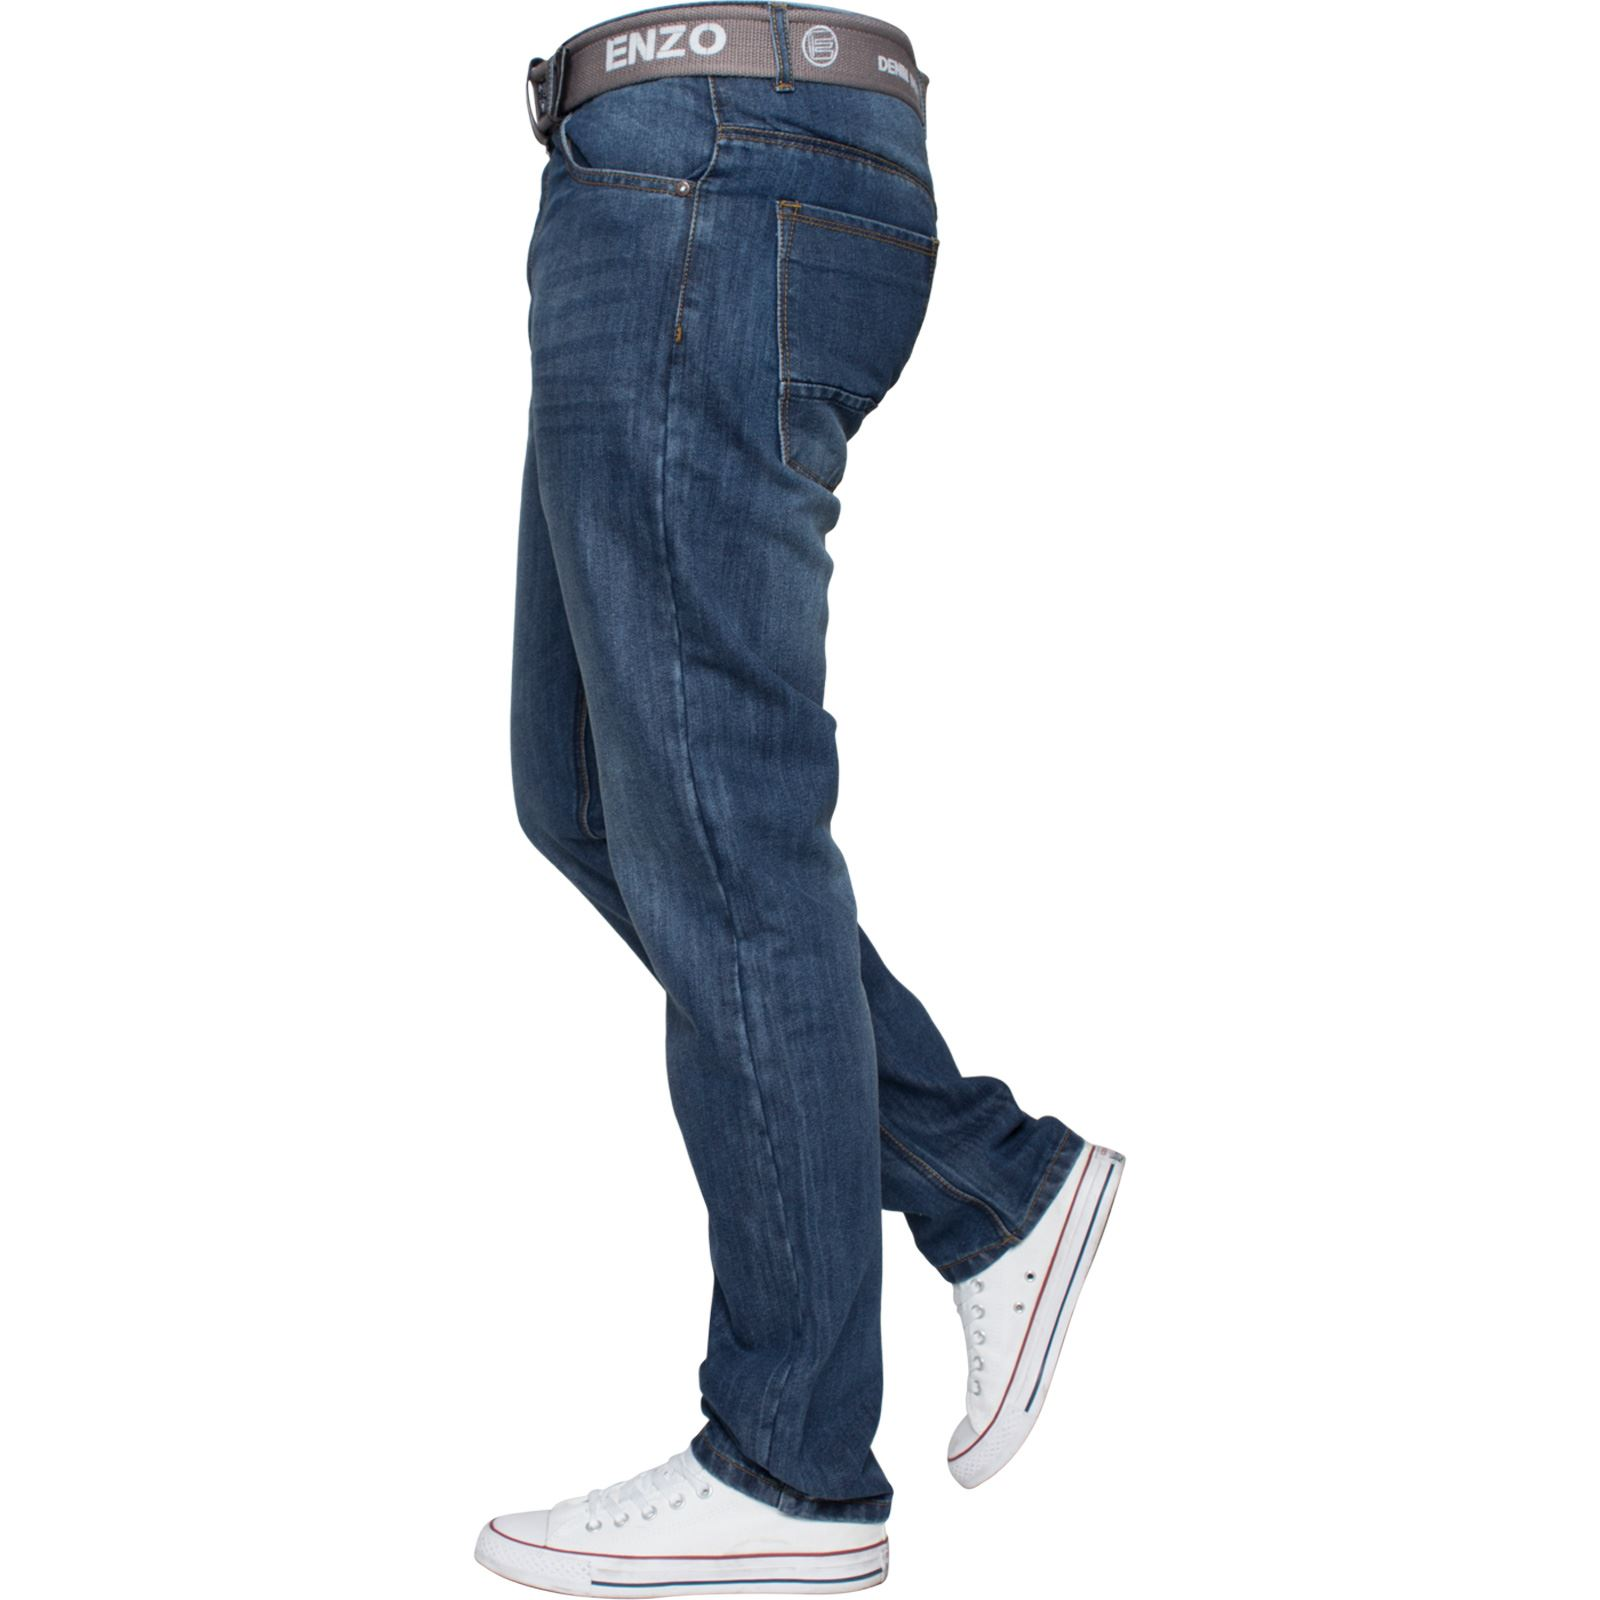 Enzo-Mens-Designer-Jeans-Regular-Fit-Denim-Pants-Big-Tall-All-Waist-Sizes thumbnail 8